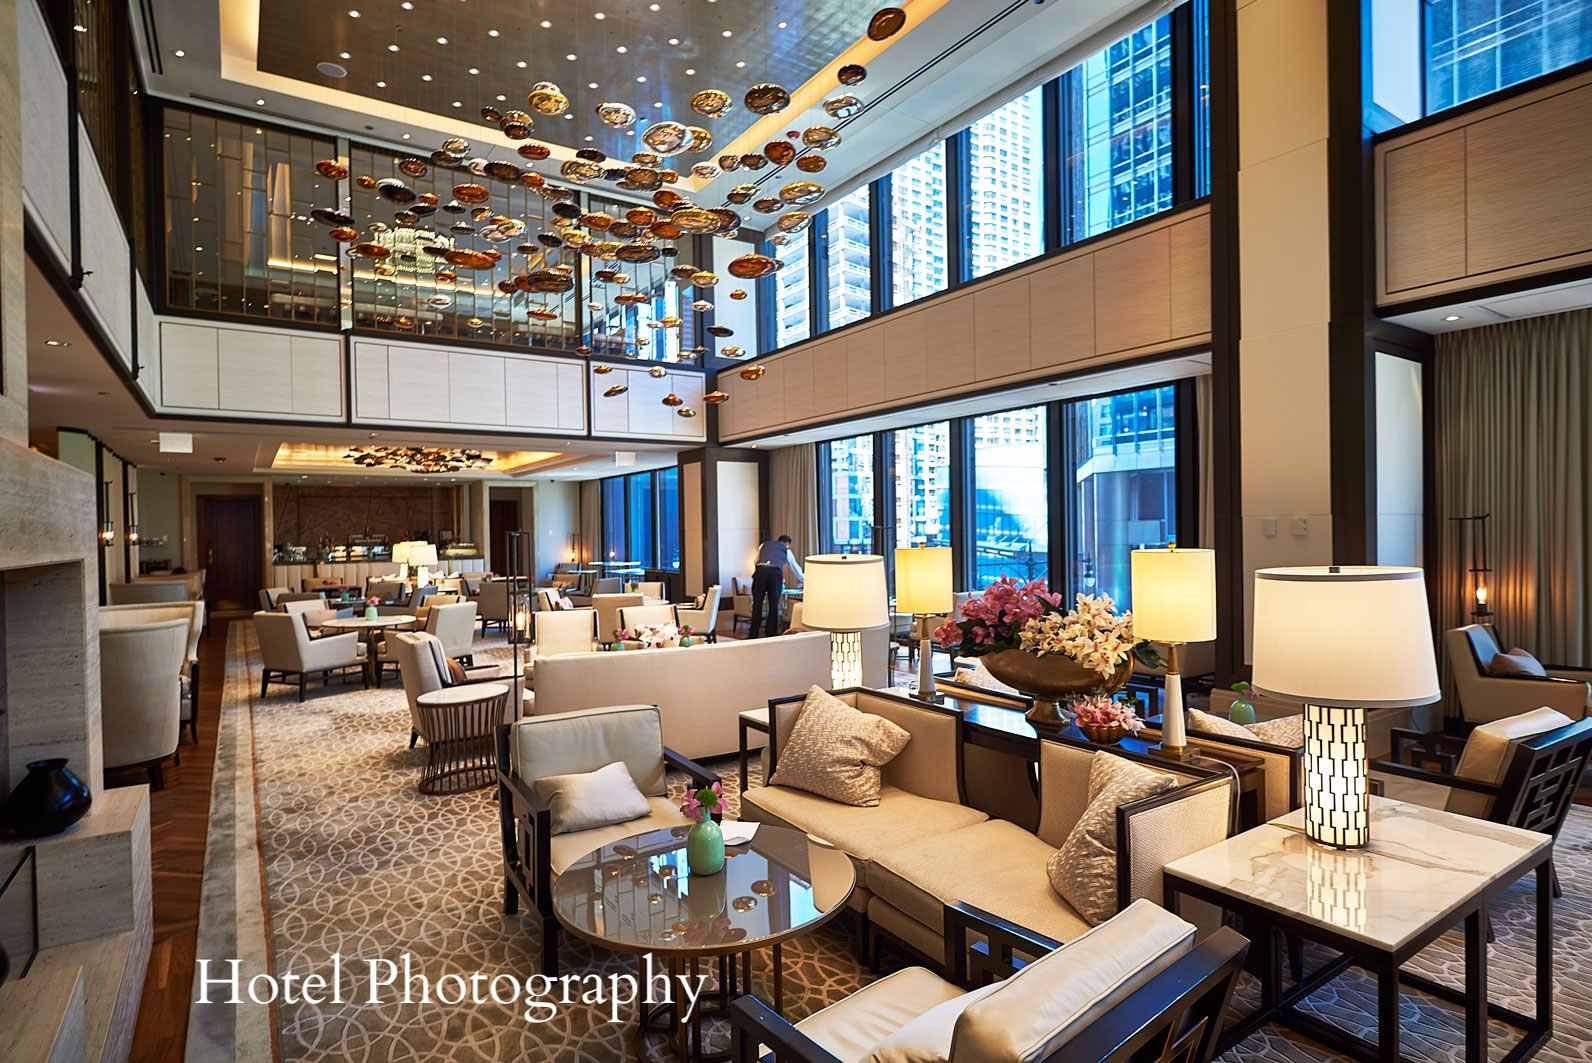 Langham-Hotel-Tea-Room-4-web.jpg